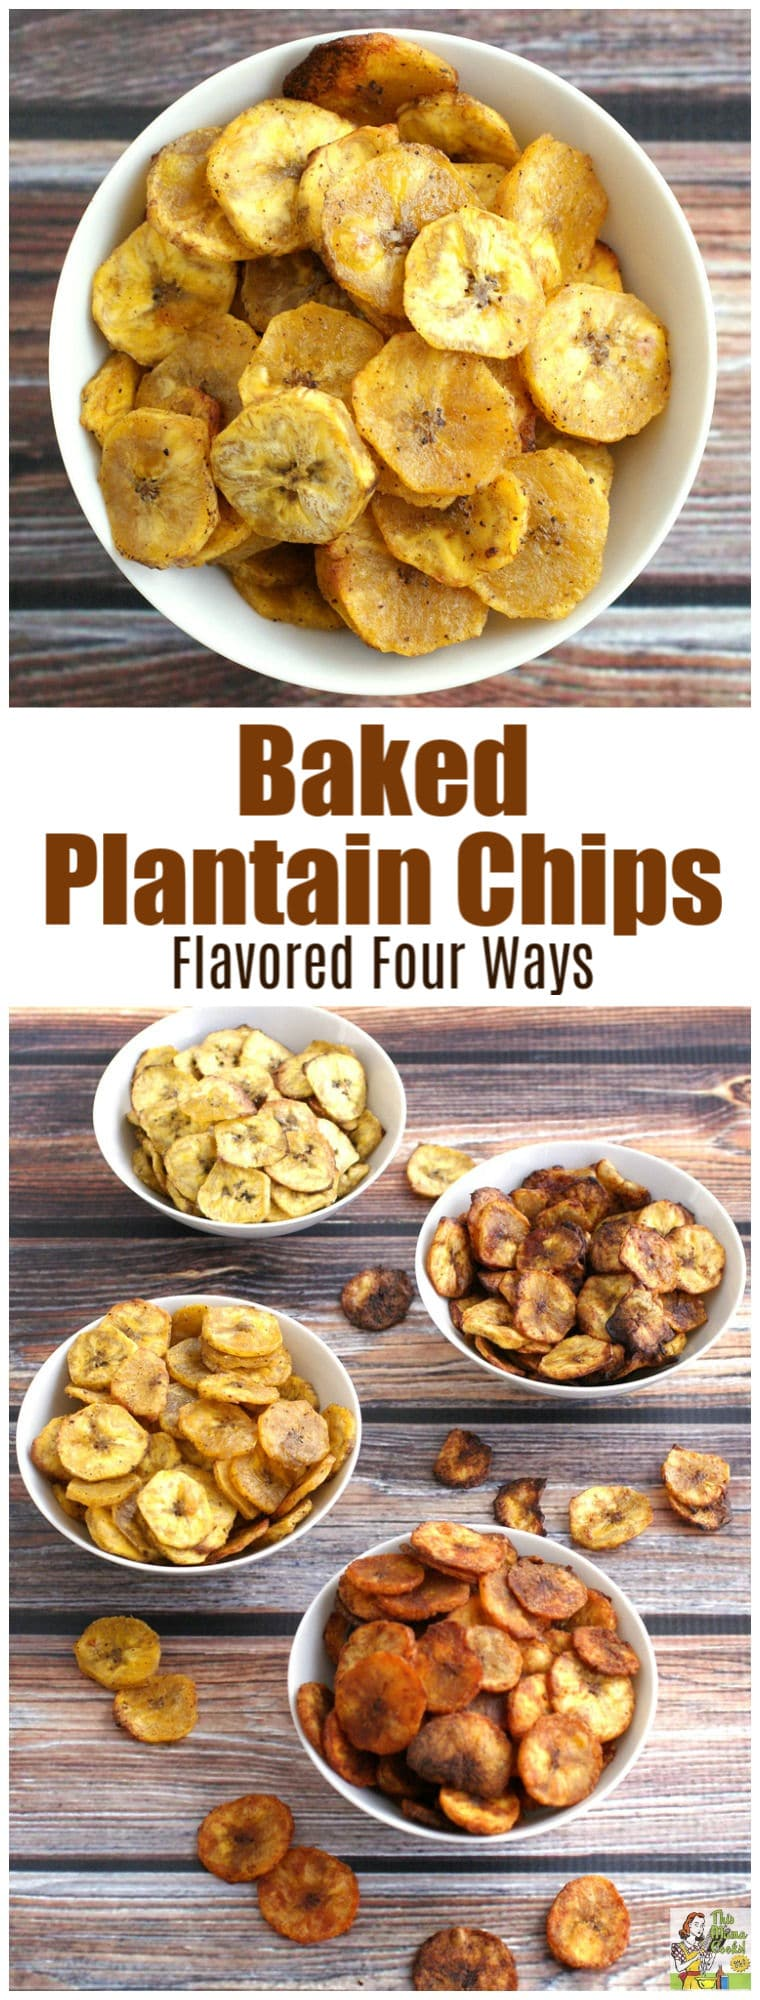 Looking for a wholesome party snack? Try this Baked Plantain Chip recipe that's flavored four ways - sweet or savory. Not only is it a delicious, healthy snack recipe, it\'s gluten free, vegetarian, vegan, and paleo! #recipe #glutenfree #vegan #appetizers #snack #paleo #recipe #savory #healthysnacks